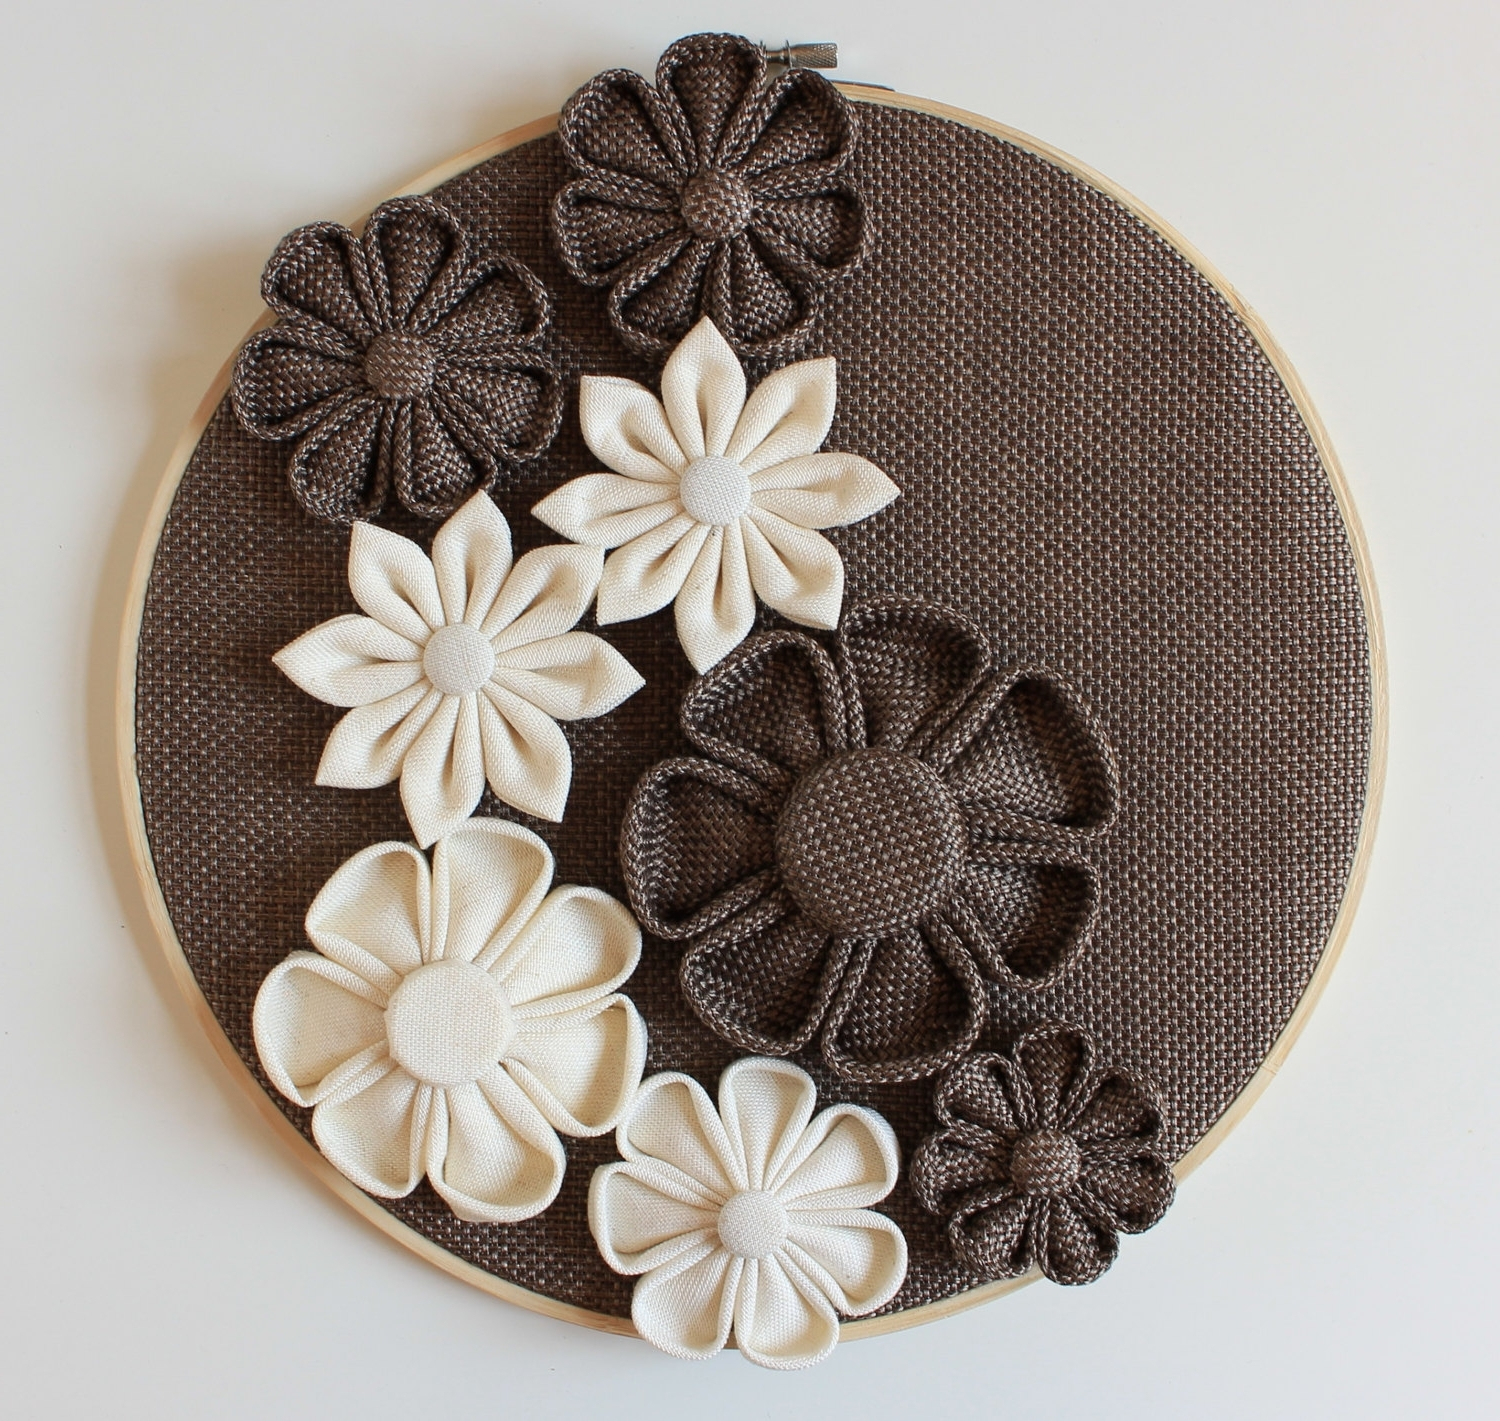 3d Wall Decor Wall Flowers Home Decor Wallneschdecoration Regarding Most Current Fabric Flower Wall Art (View 10 of 15)